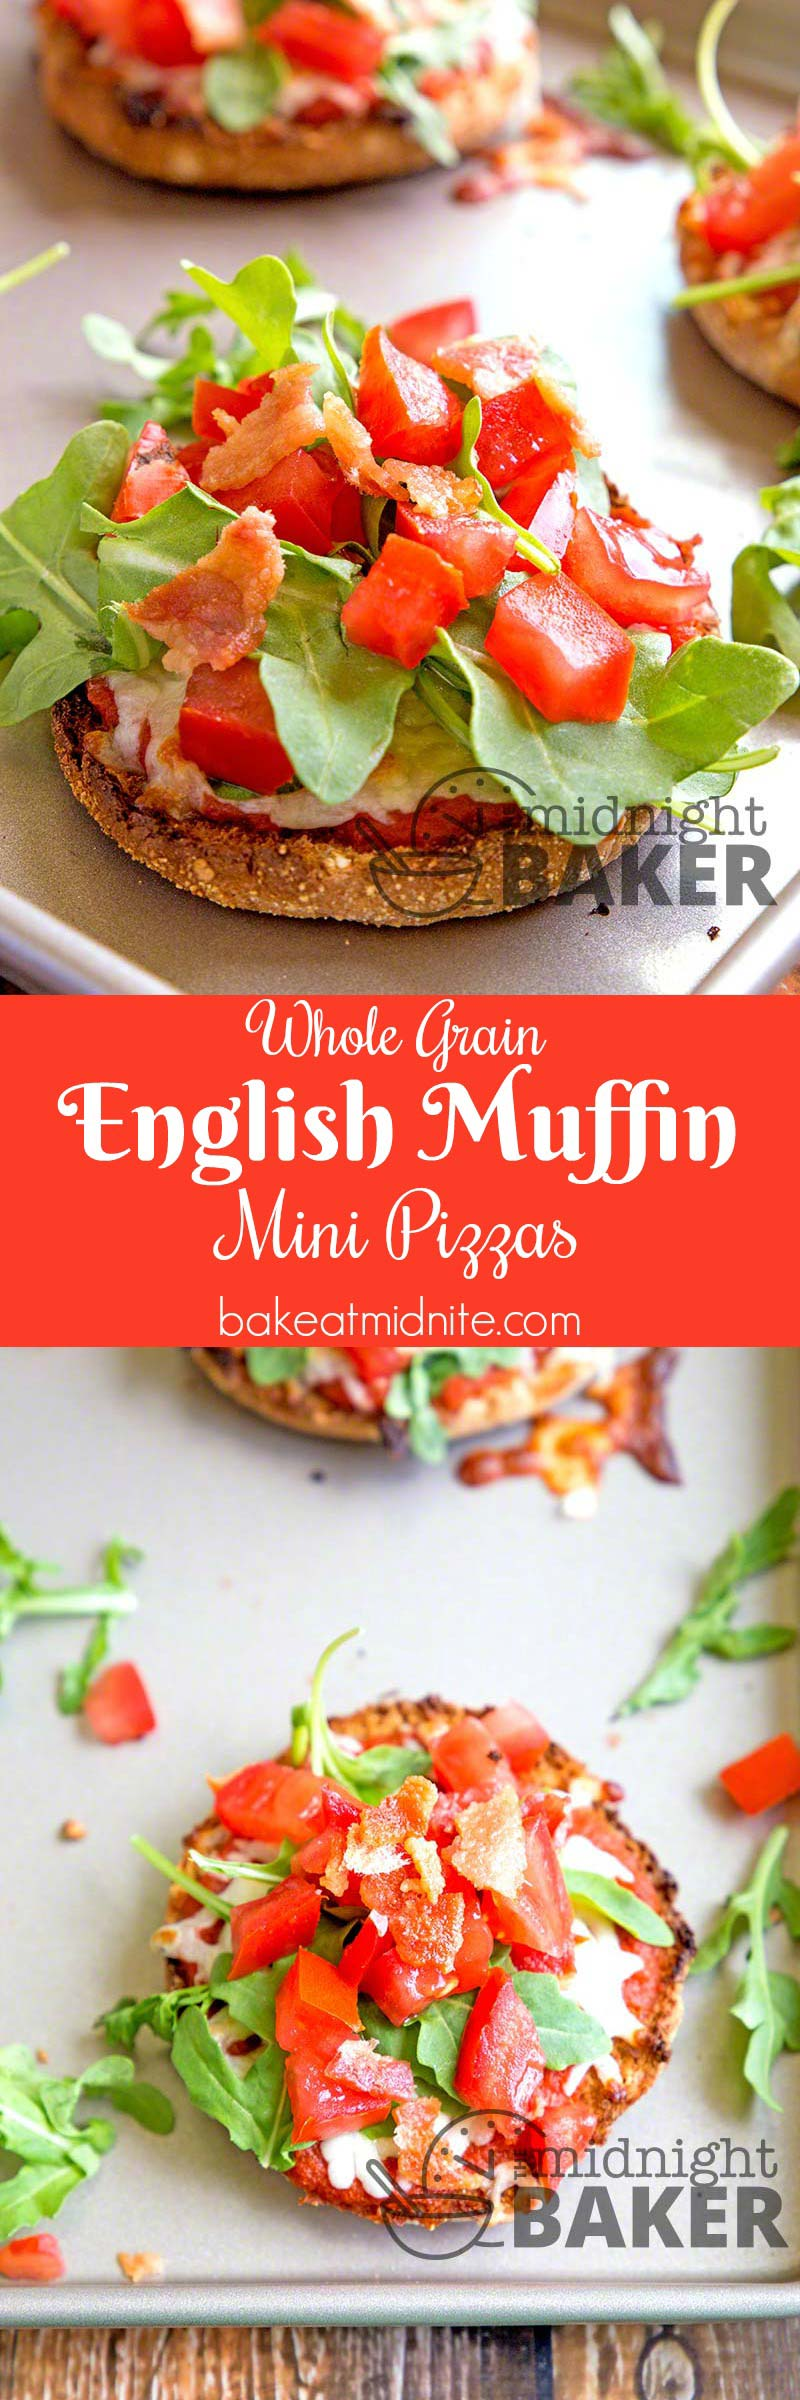 These mini pizzas are great for a quick healthy snack. Made with whole-grain English muffins.